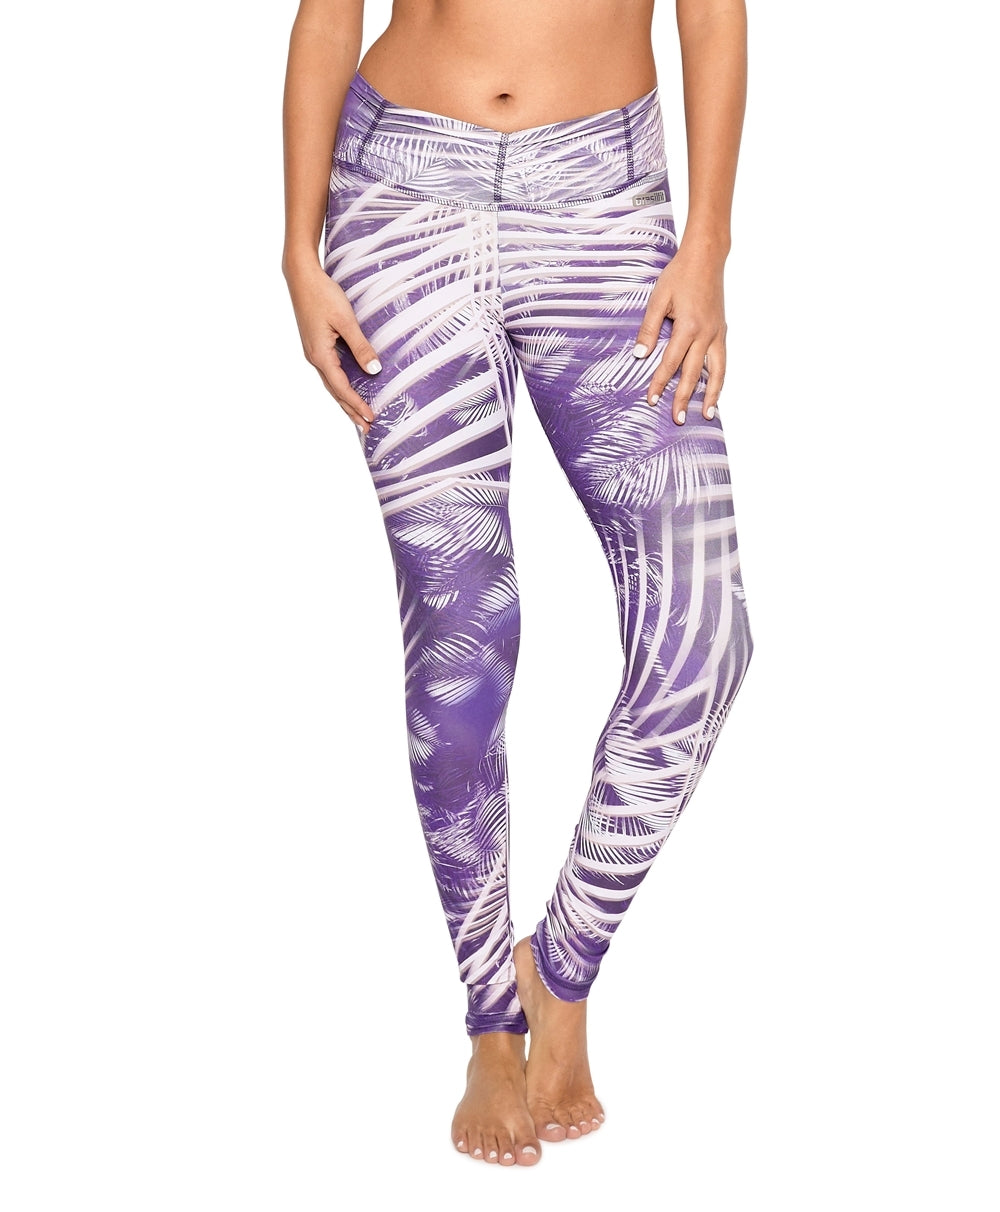 Full Length Legging Violet Dream